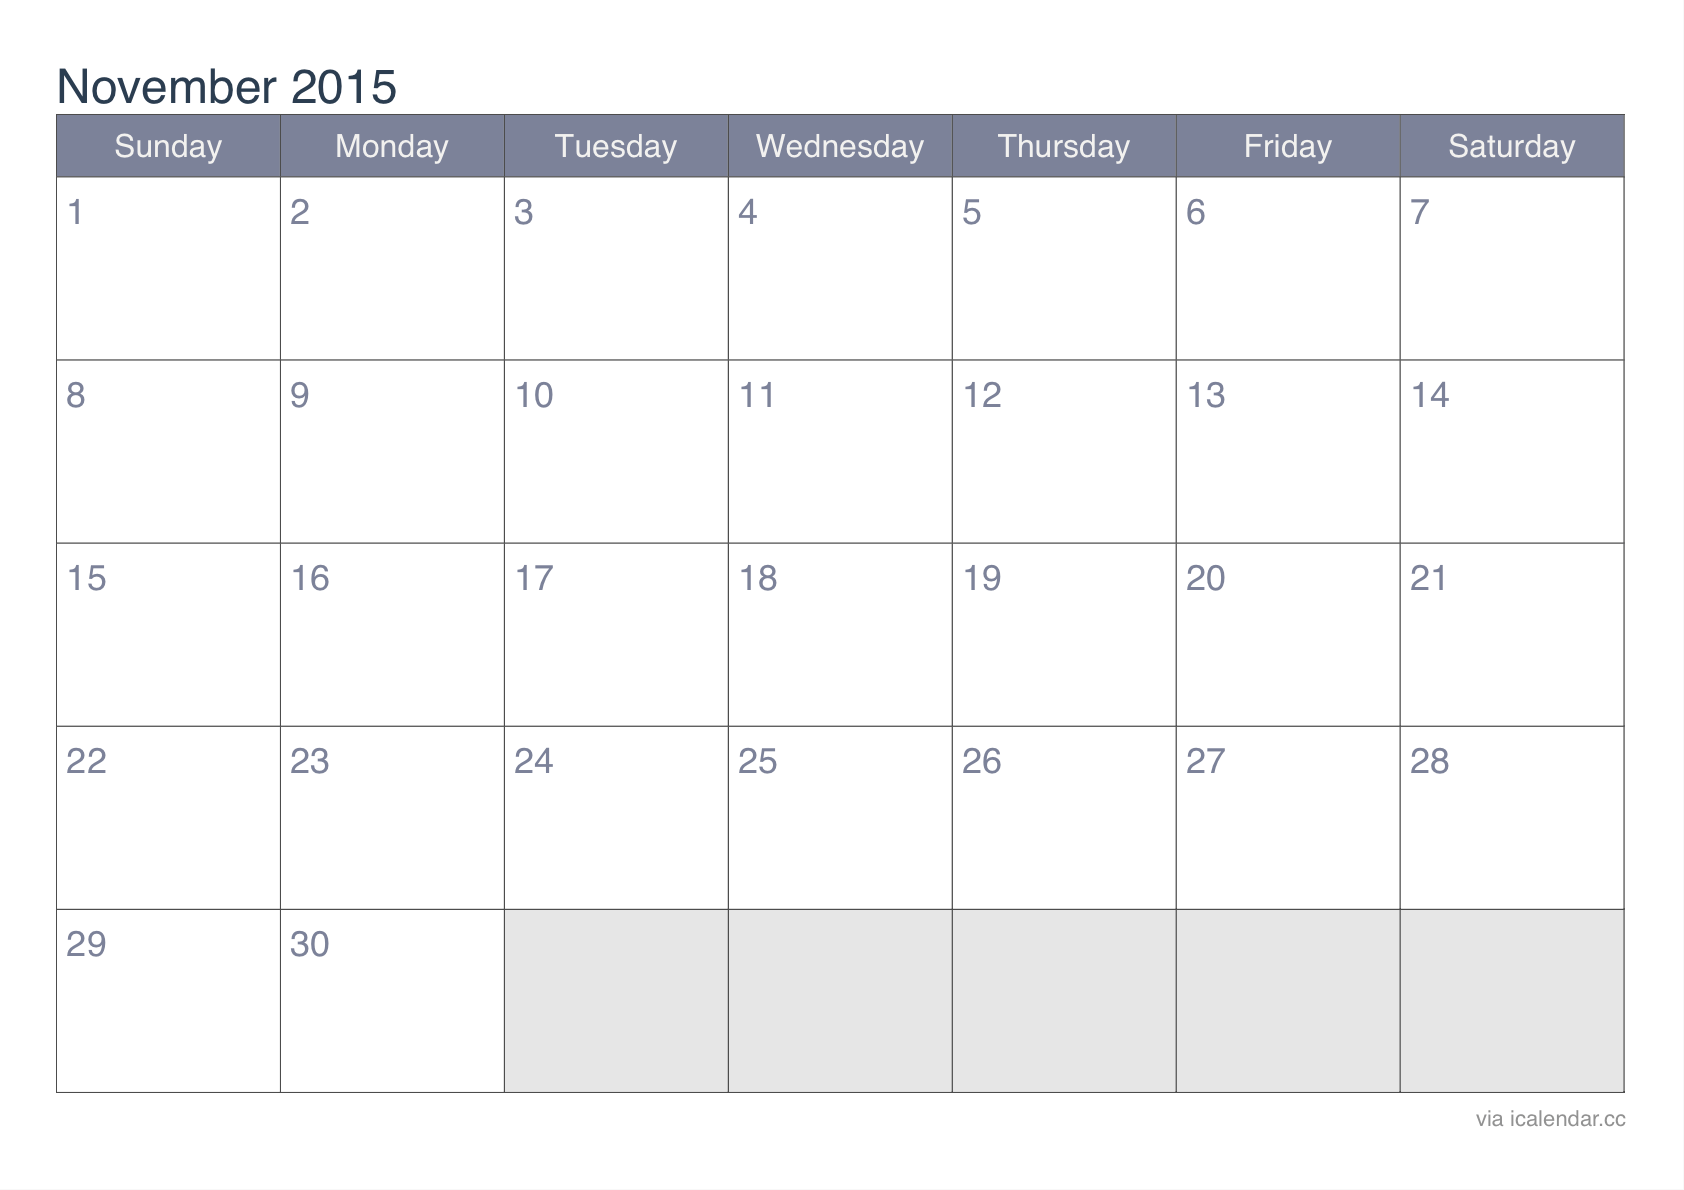 November 2015 Printable Calendar - icalendars.net